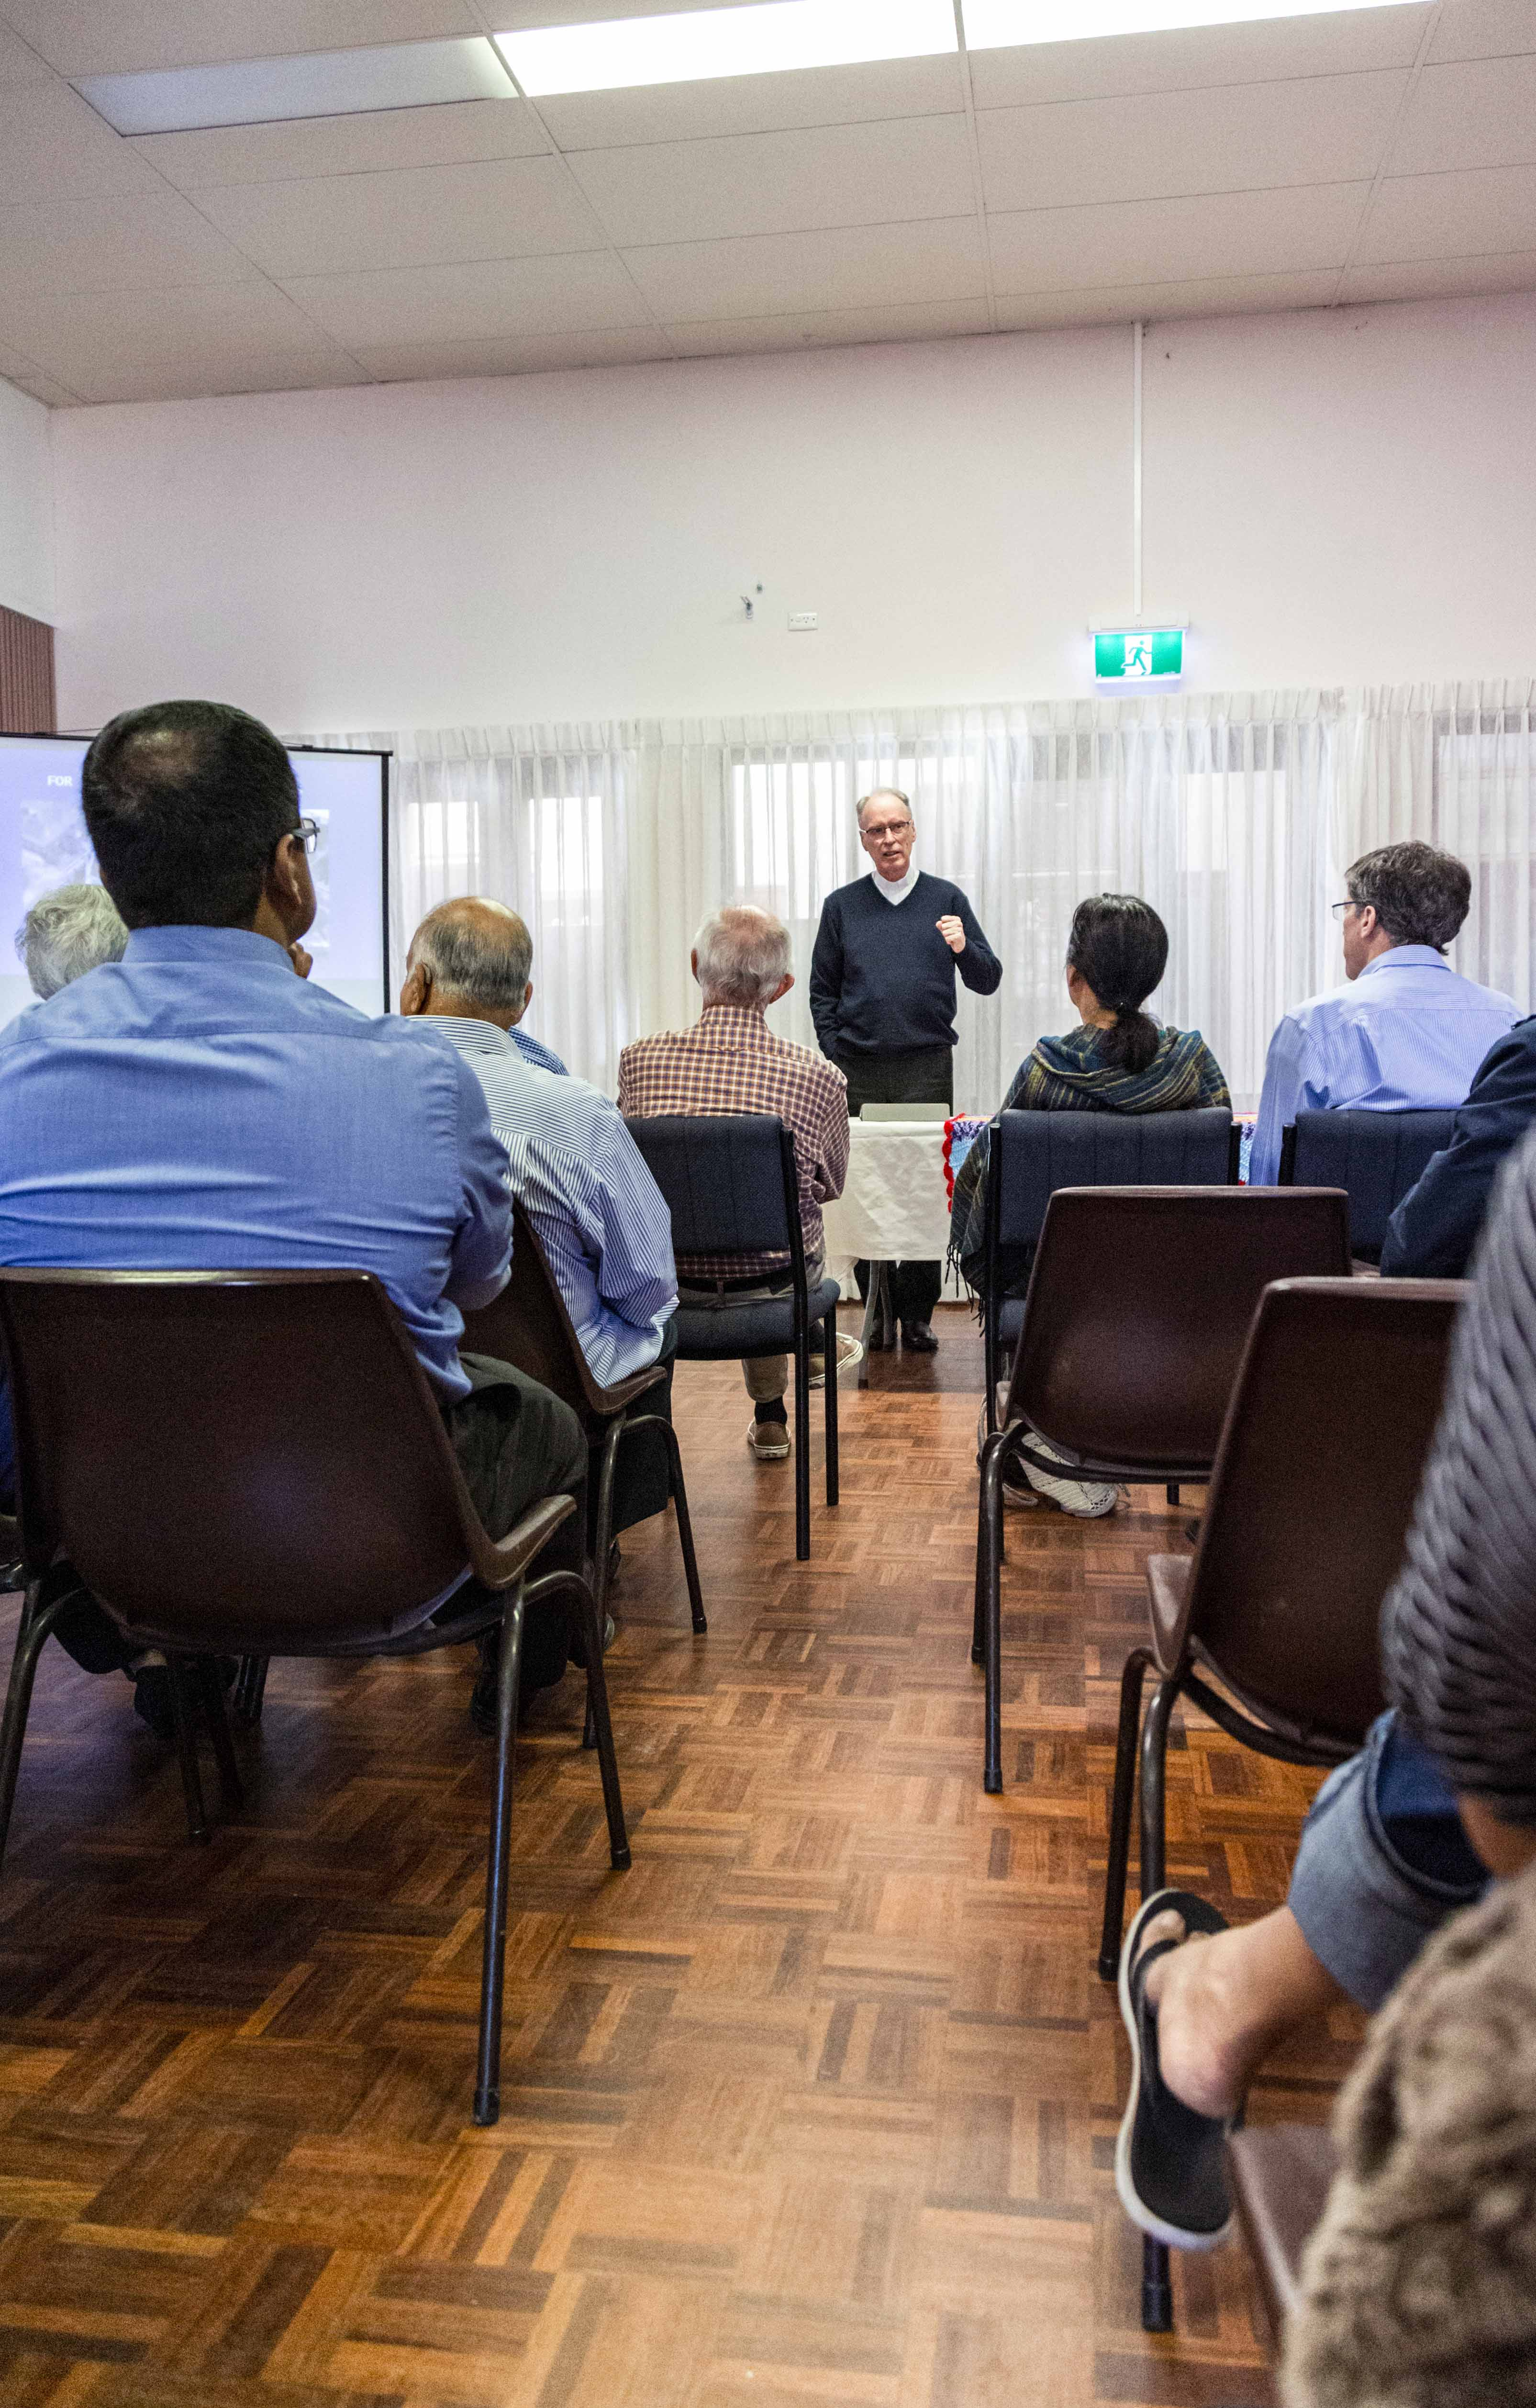 Bishop Donald Sproxton addressing representatives from Perth's parishes about the importance of connectivity and inclusivity in the church community. Photo: Jamie O'Brien.